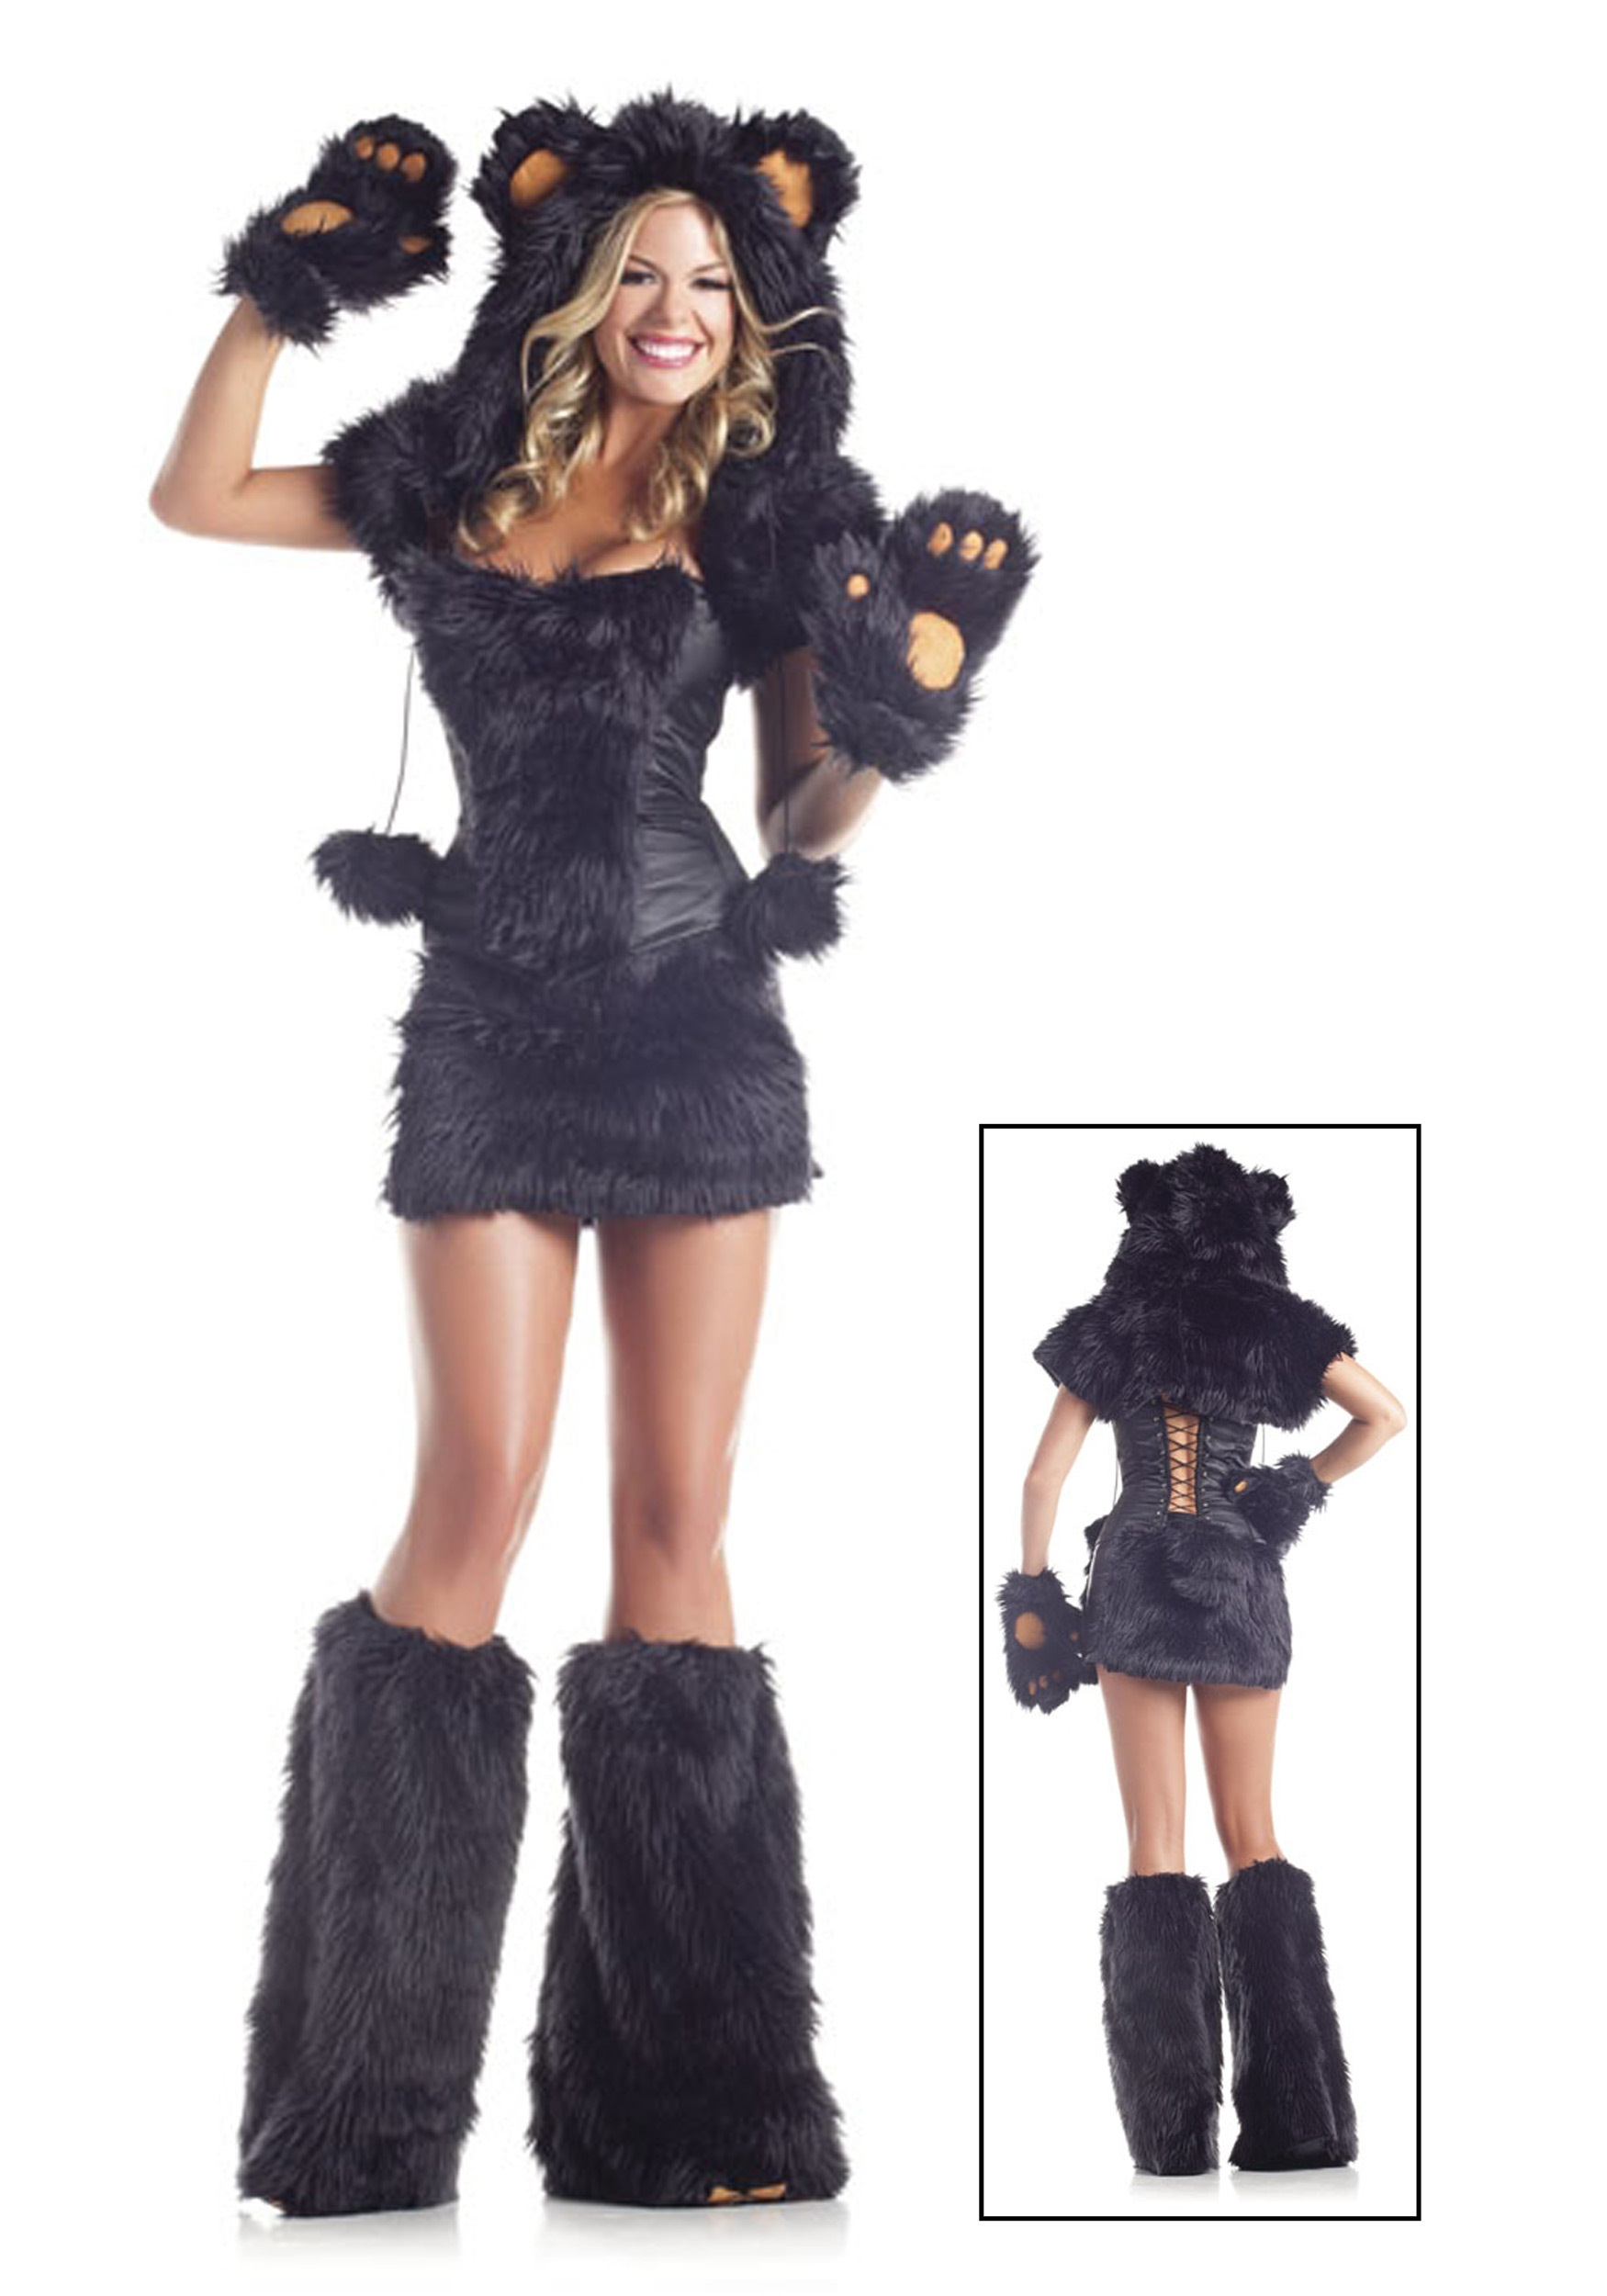 Bear costume for adults situation